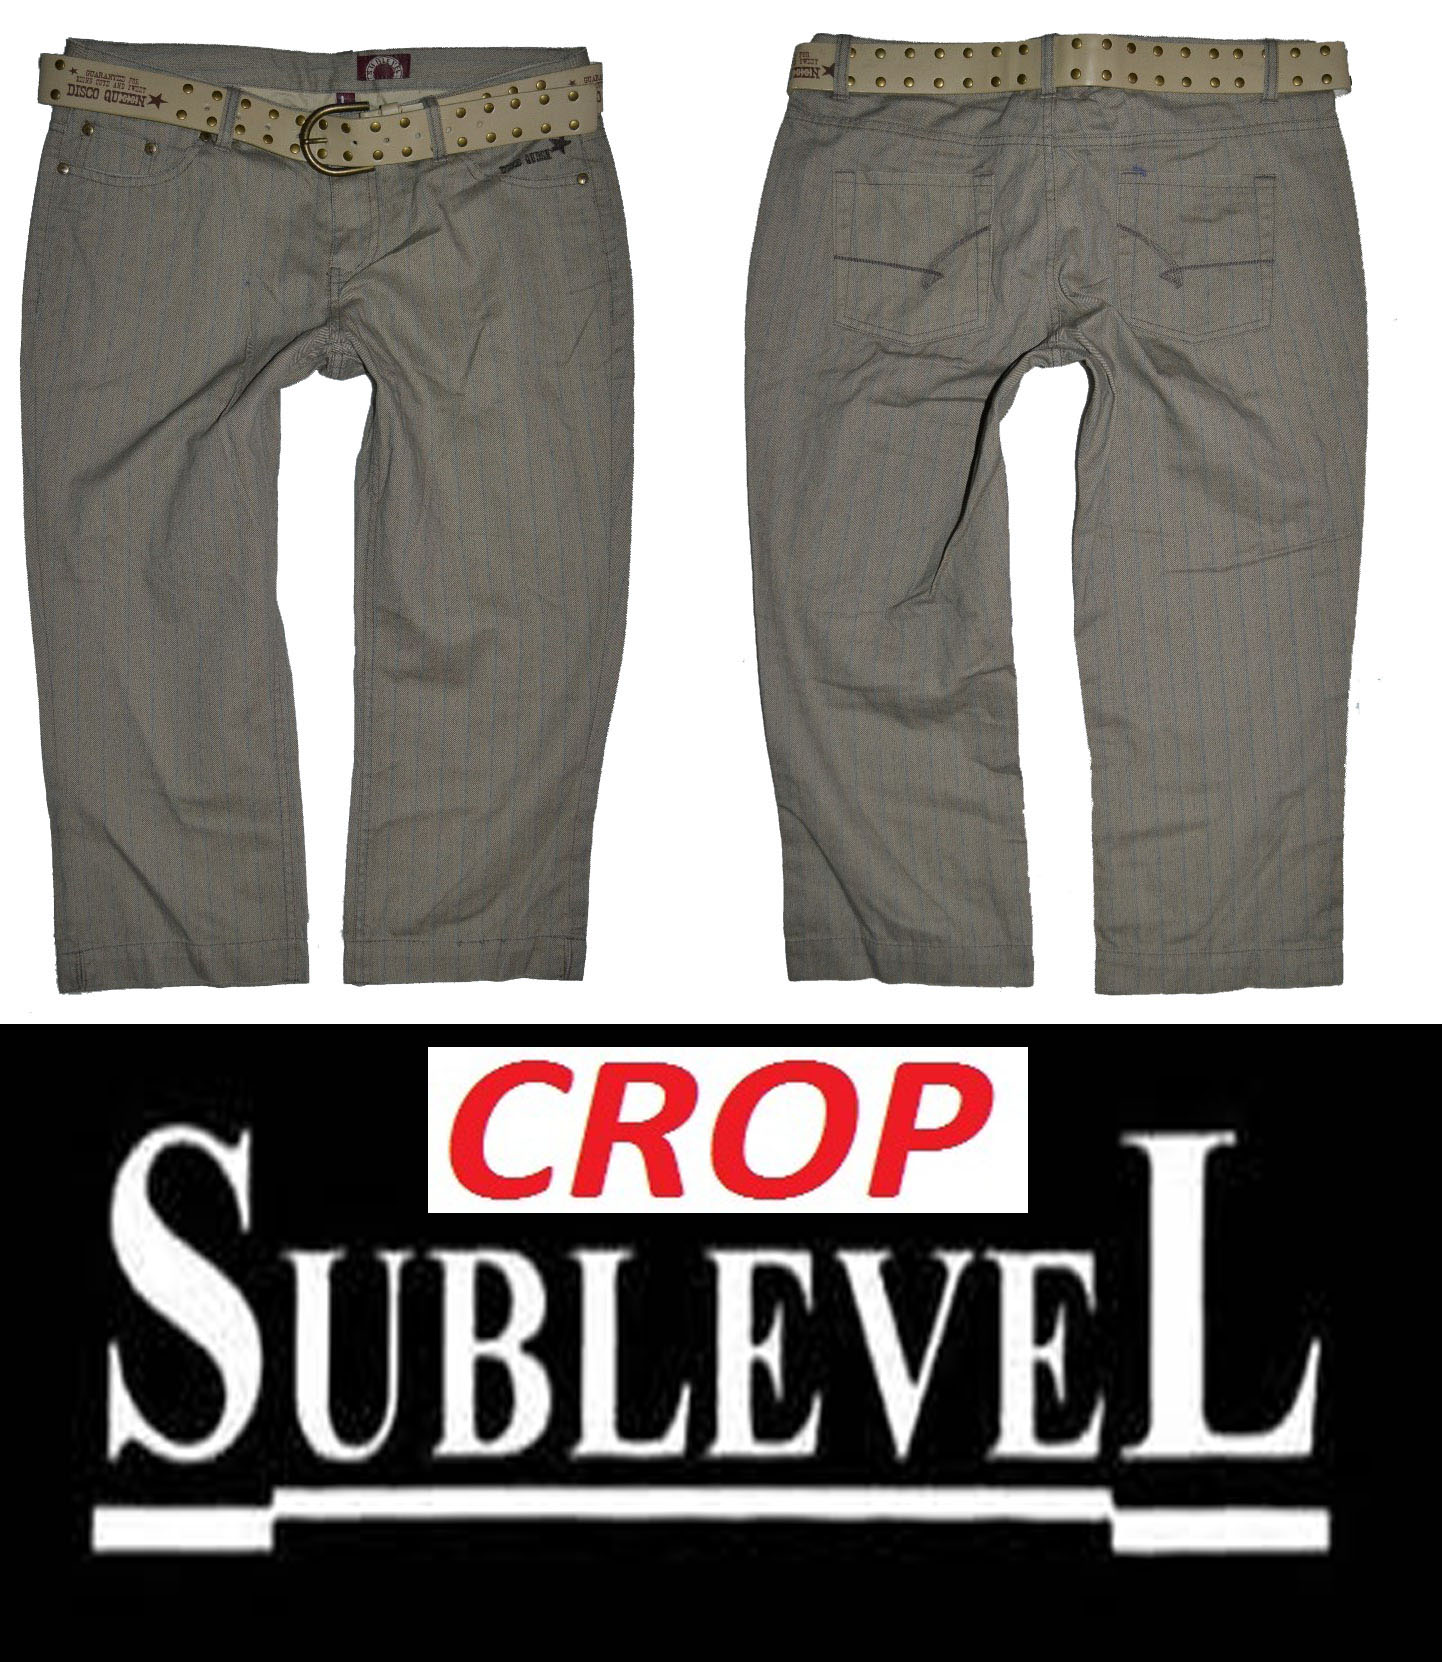 3/4 kraťasy zn. SUBLEVEL CROP vel. L (38-40)